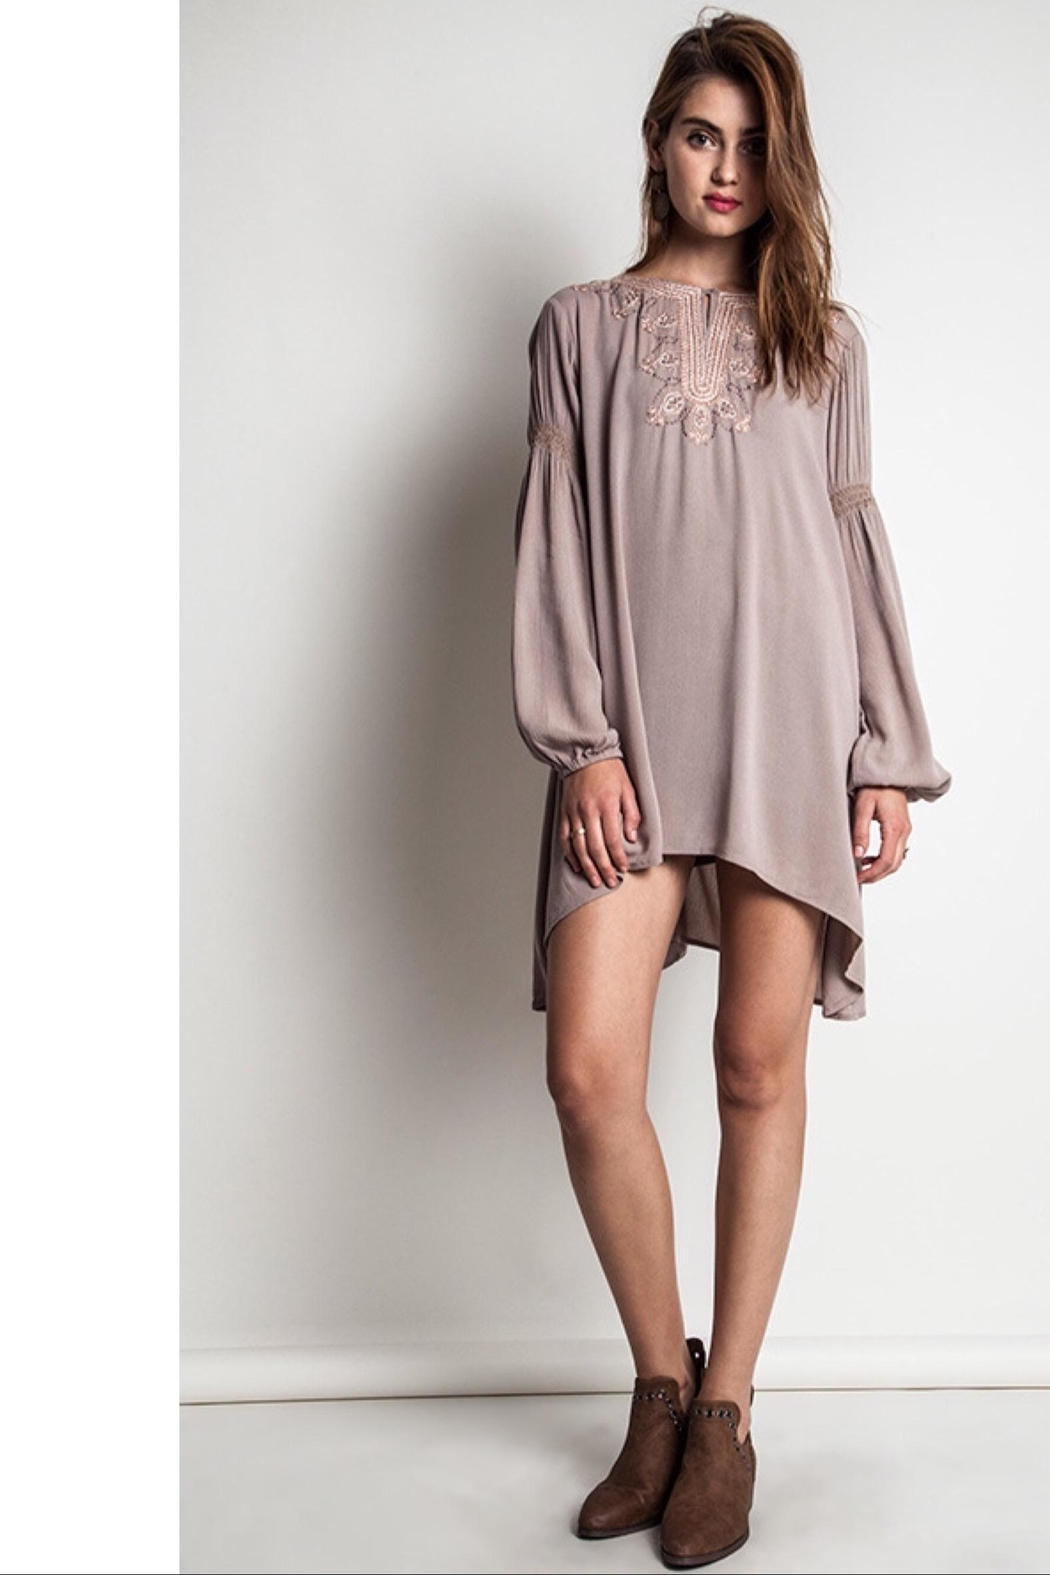 People Outfitter Taupe Bishop Sleeves Embroidery Tunic Dress - Main Image